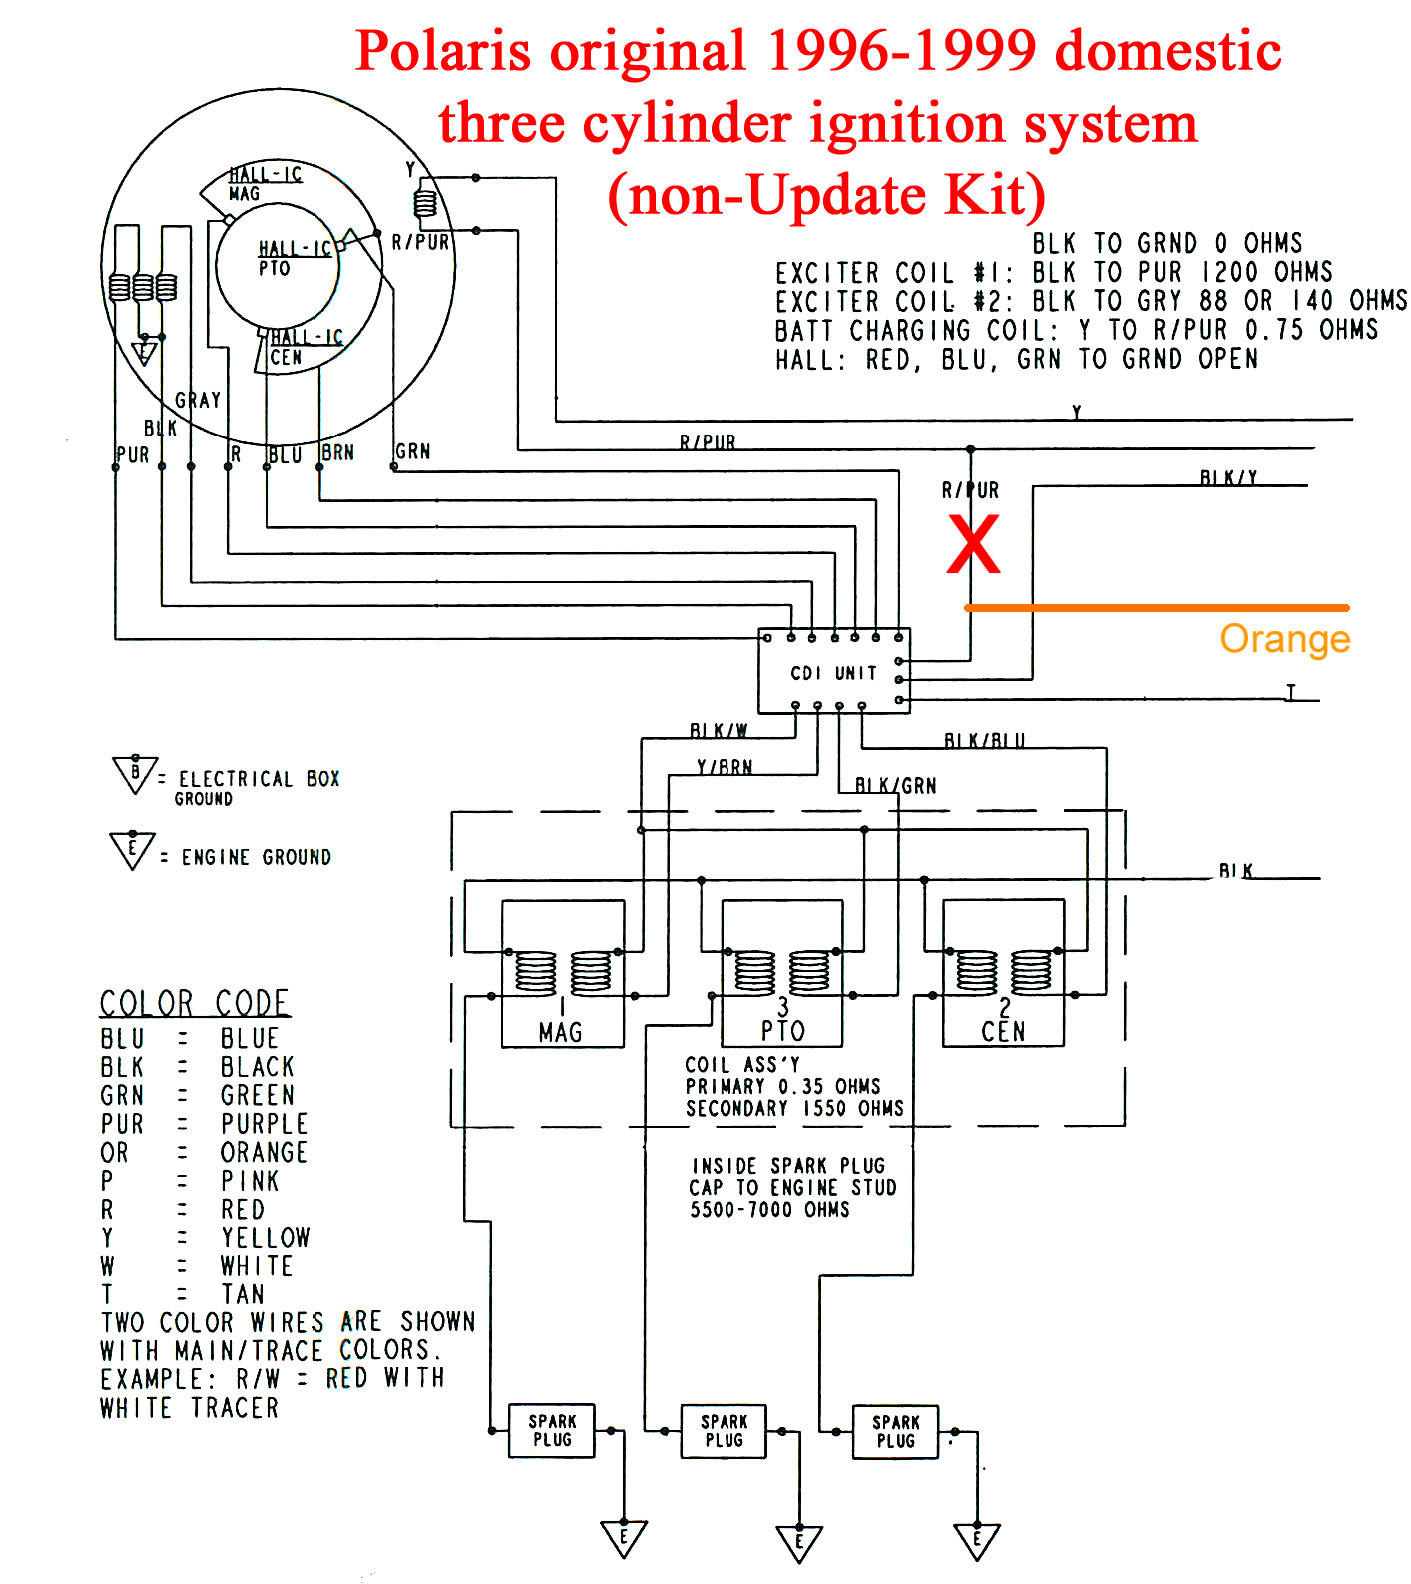 cdi ignition schematic mc 0359  6 wire cdi box diagram sportsman 300 schematic wiring  6 wire cdi box diagram sportsman 300